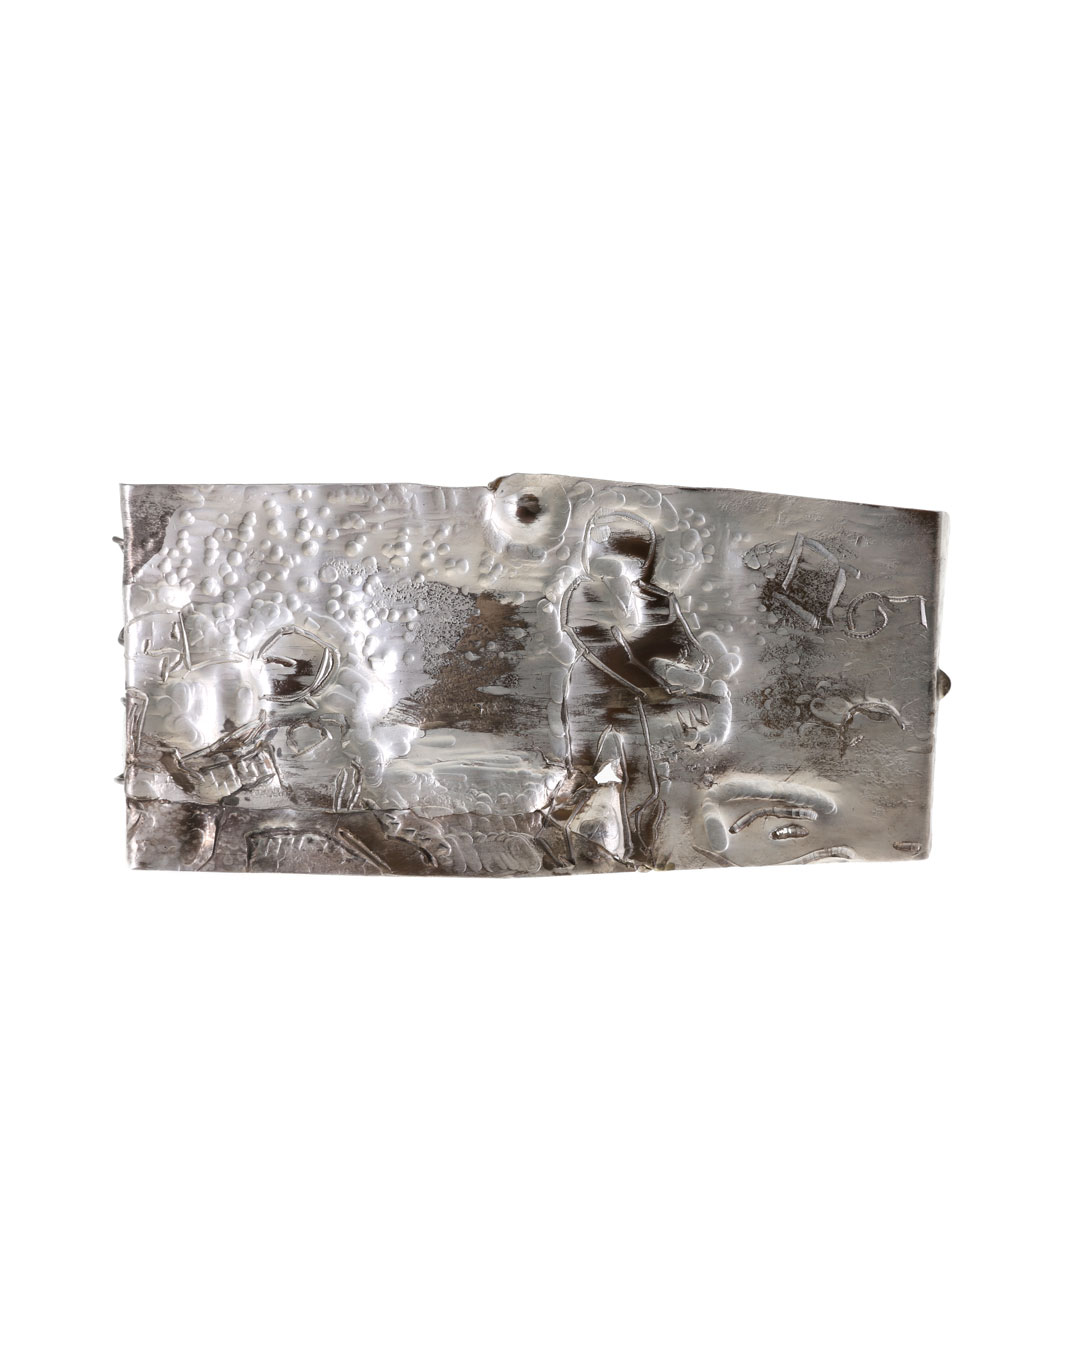 Rudolf Kocéa, Super Bowl, 2017, brooch; silver, copper, 155 x 80 x 10 mm, €2400